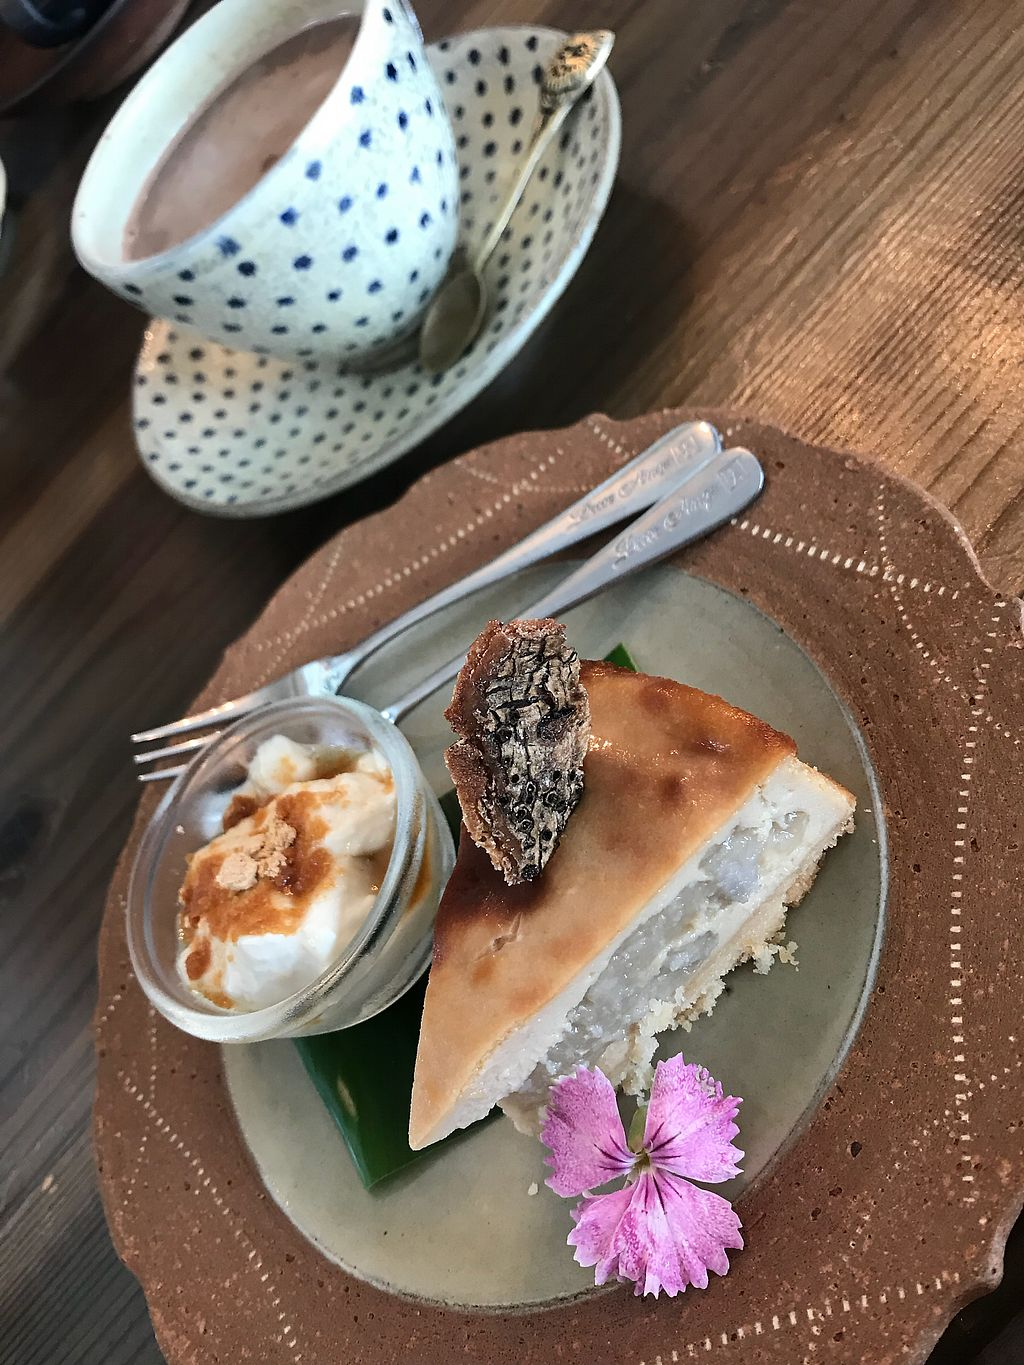 """Photo of Imacoco  by <a href=""""/members/profile/SophieGuay"""">SophieGuay</a> <br/>Tofu cheesecake and soy milk cocoa  <br/> April 12, 2018  - <a href='/contact/abuse/image/85000/384393'>Report</a>"""